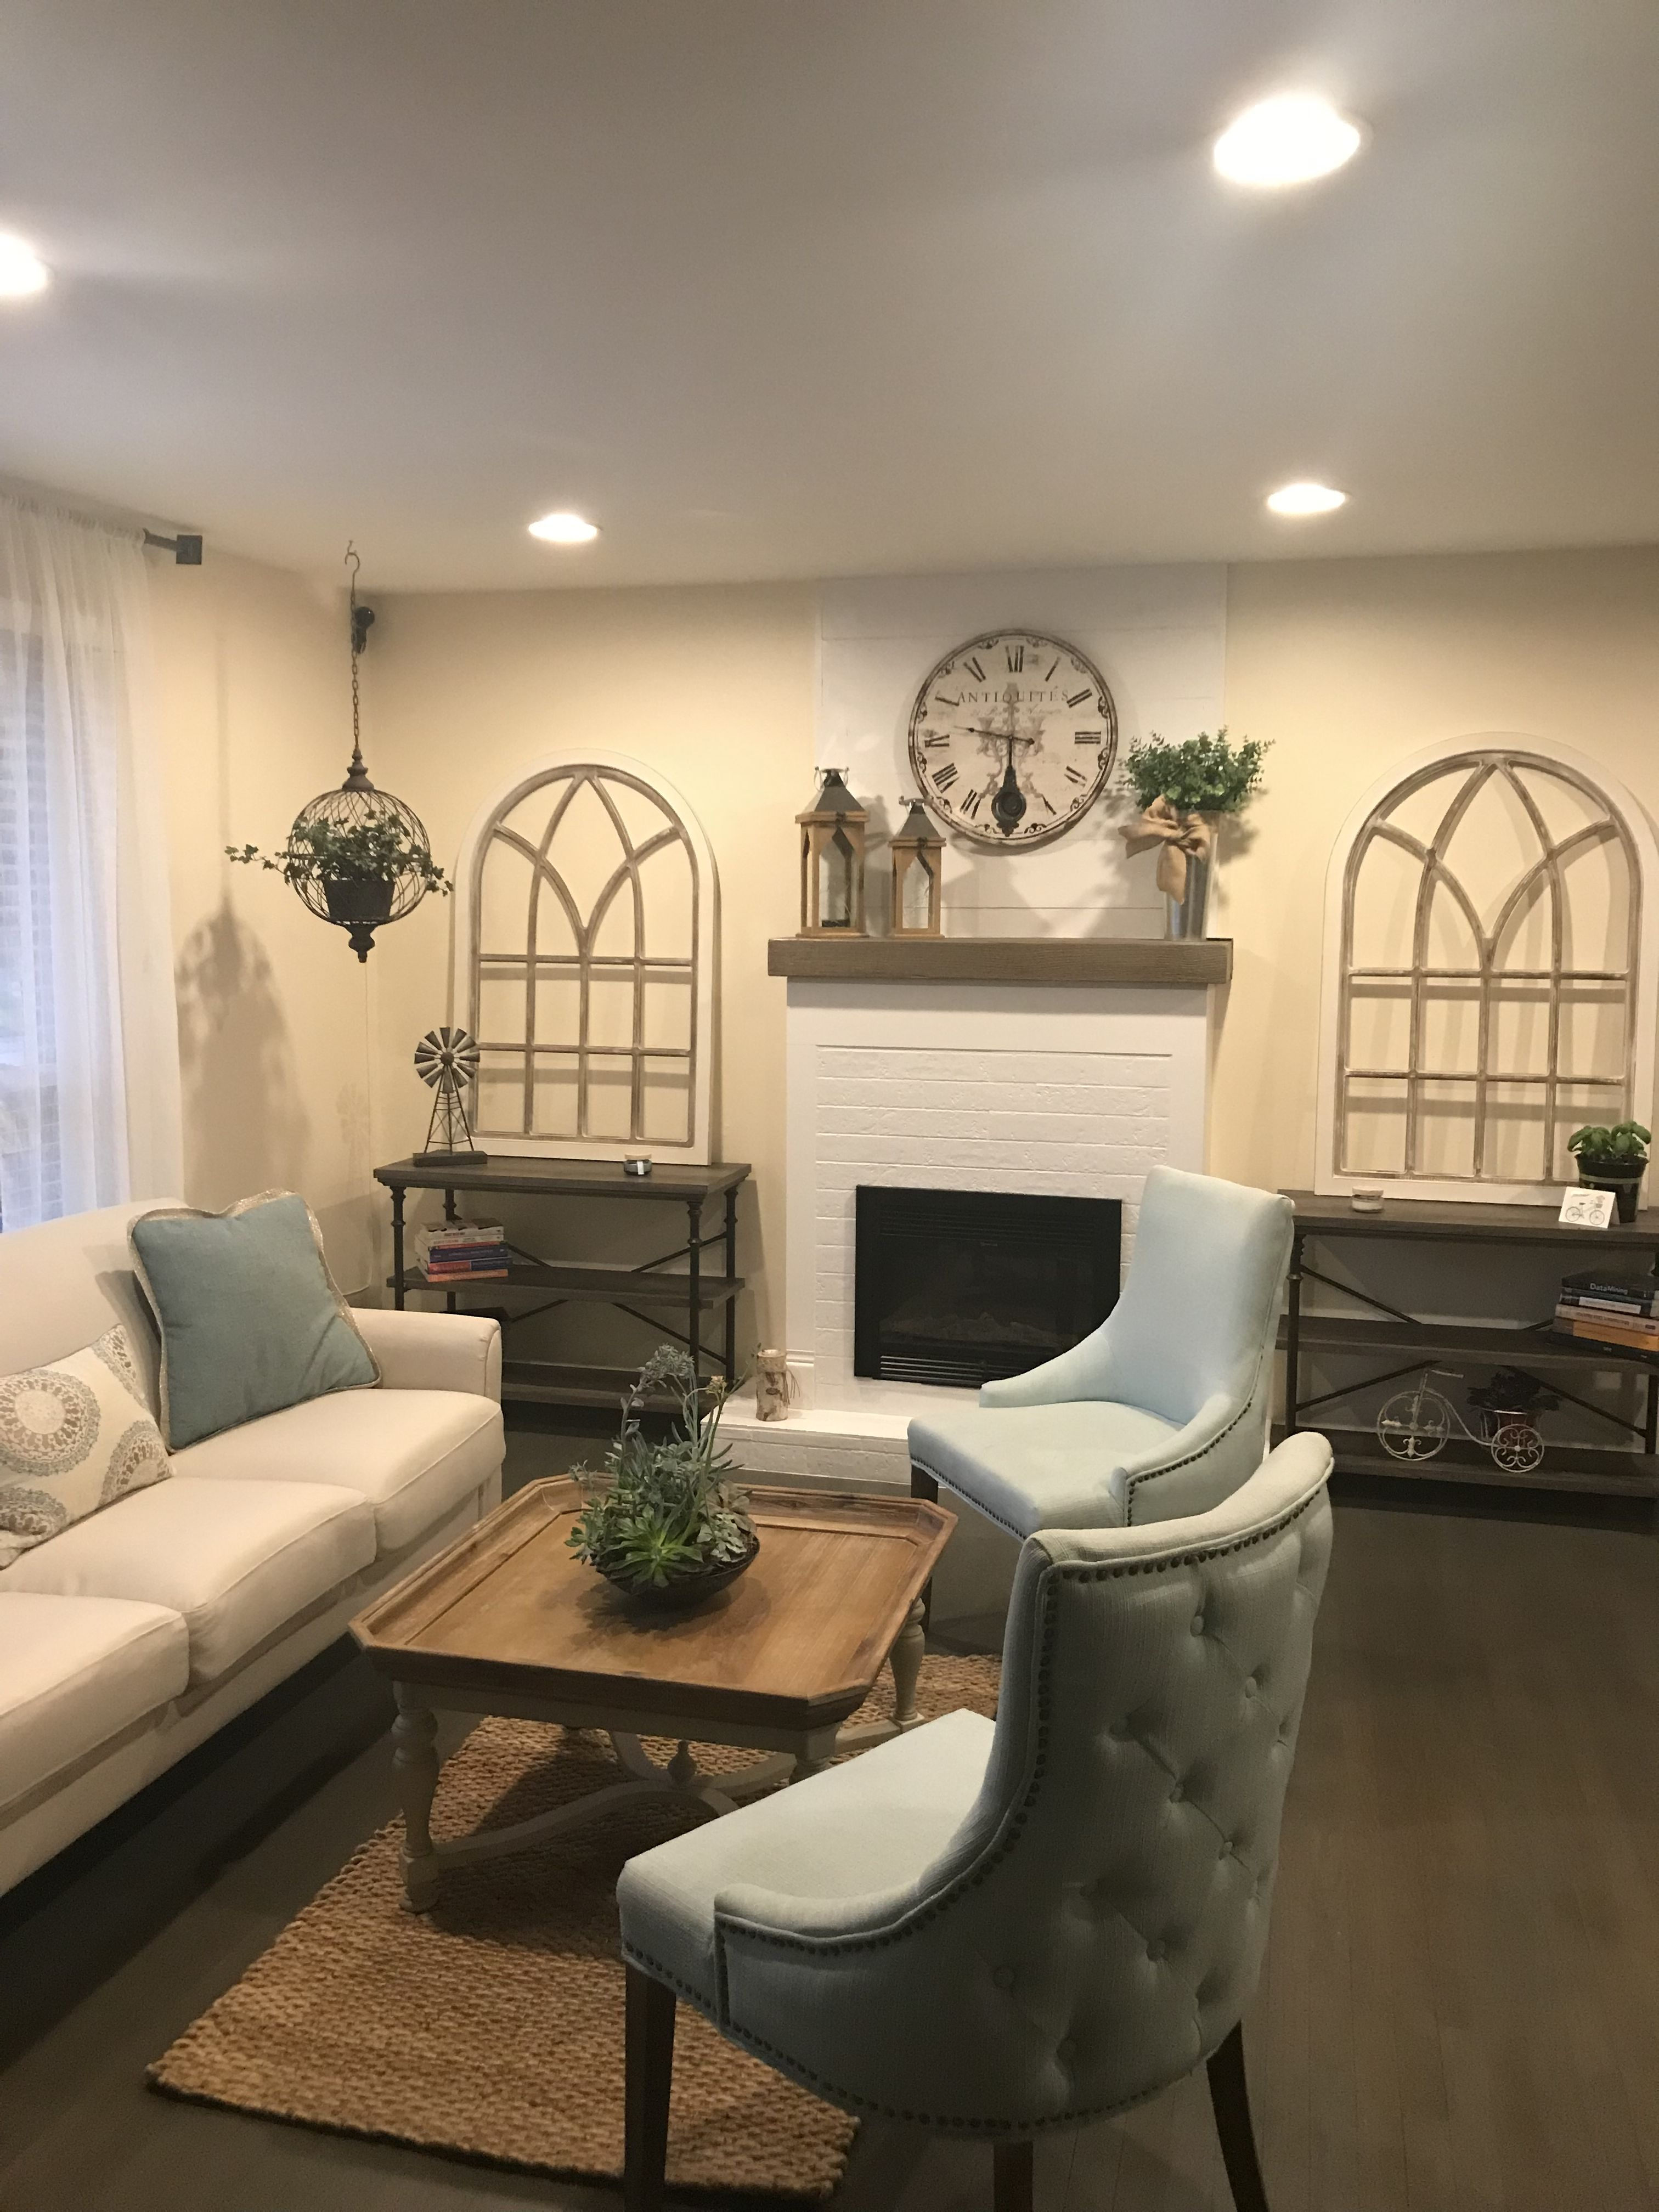 pier one fireplace decor on ivory arch wall decor pier 1 imports black living room decor beige living rooms arched wall decor beige living rooms arched wall decor